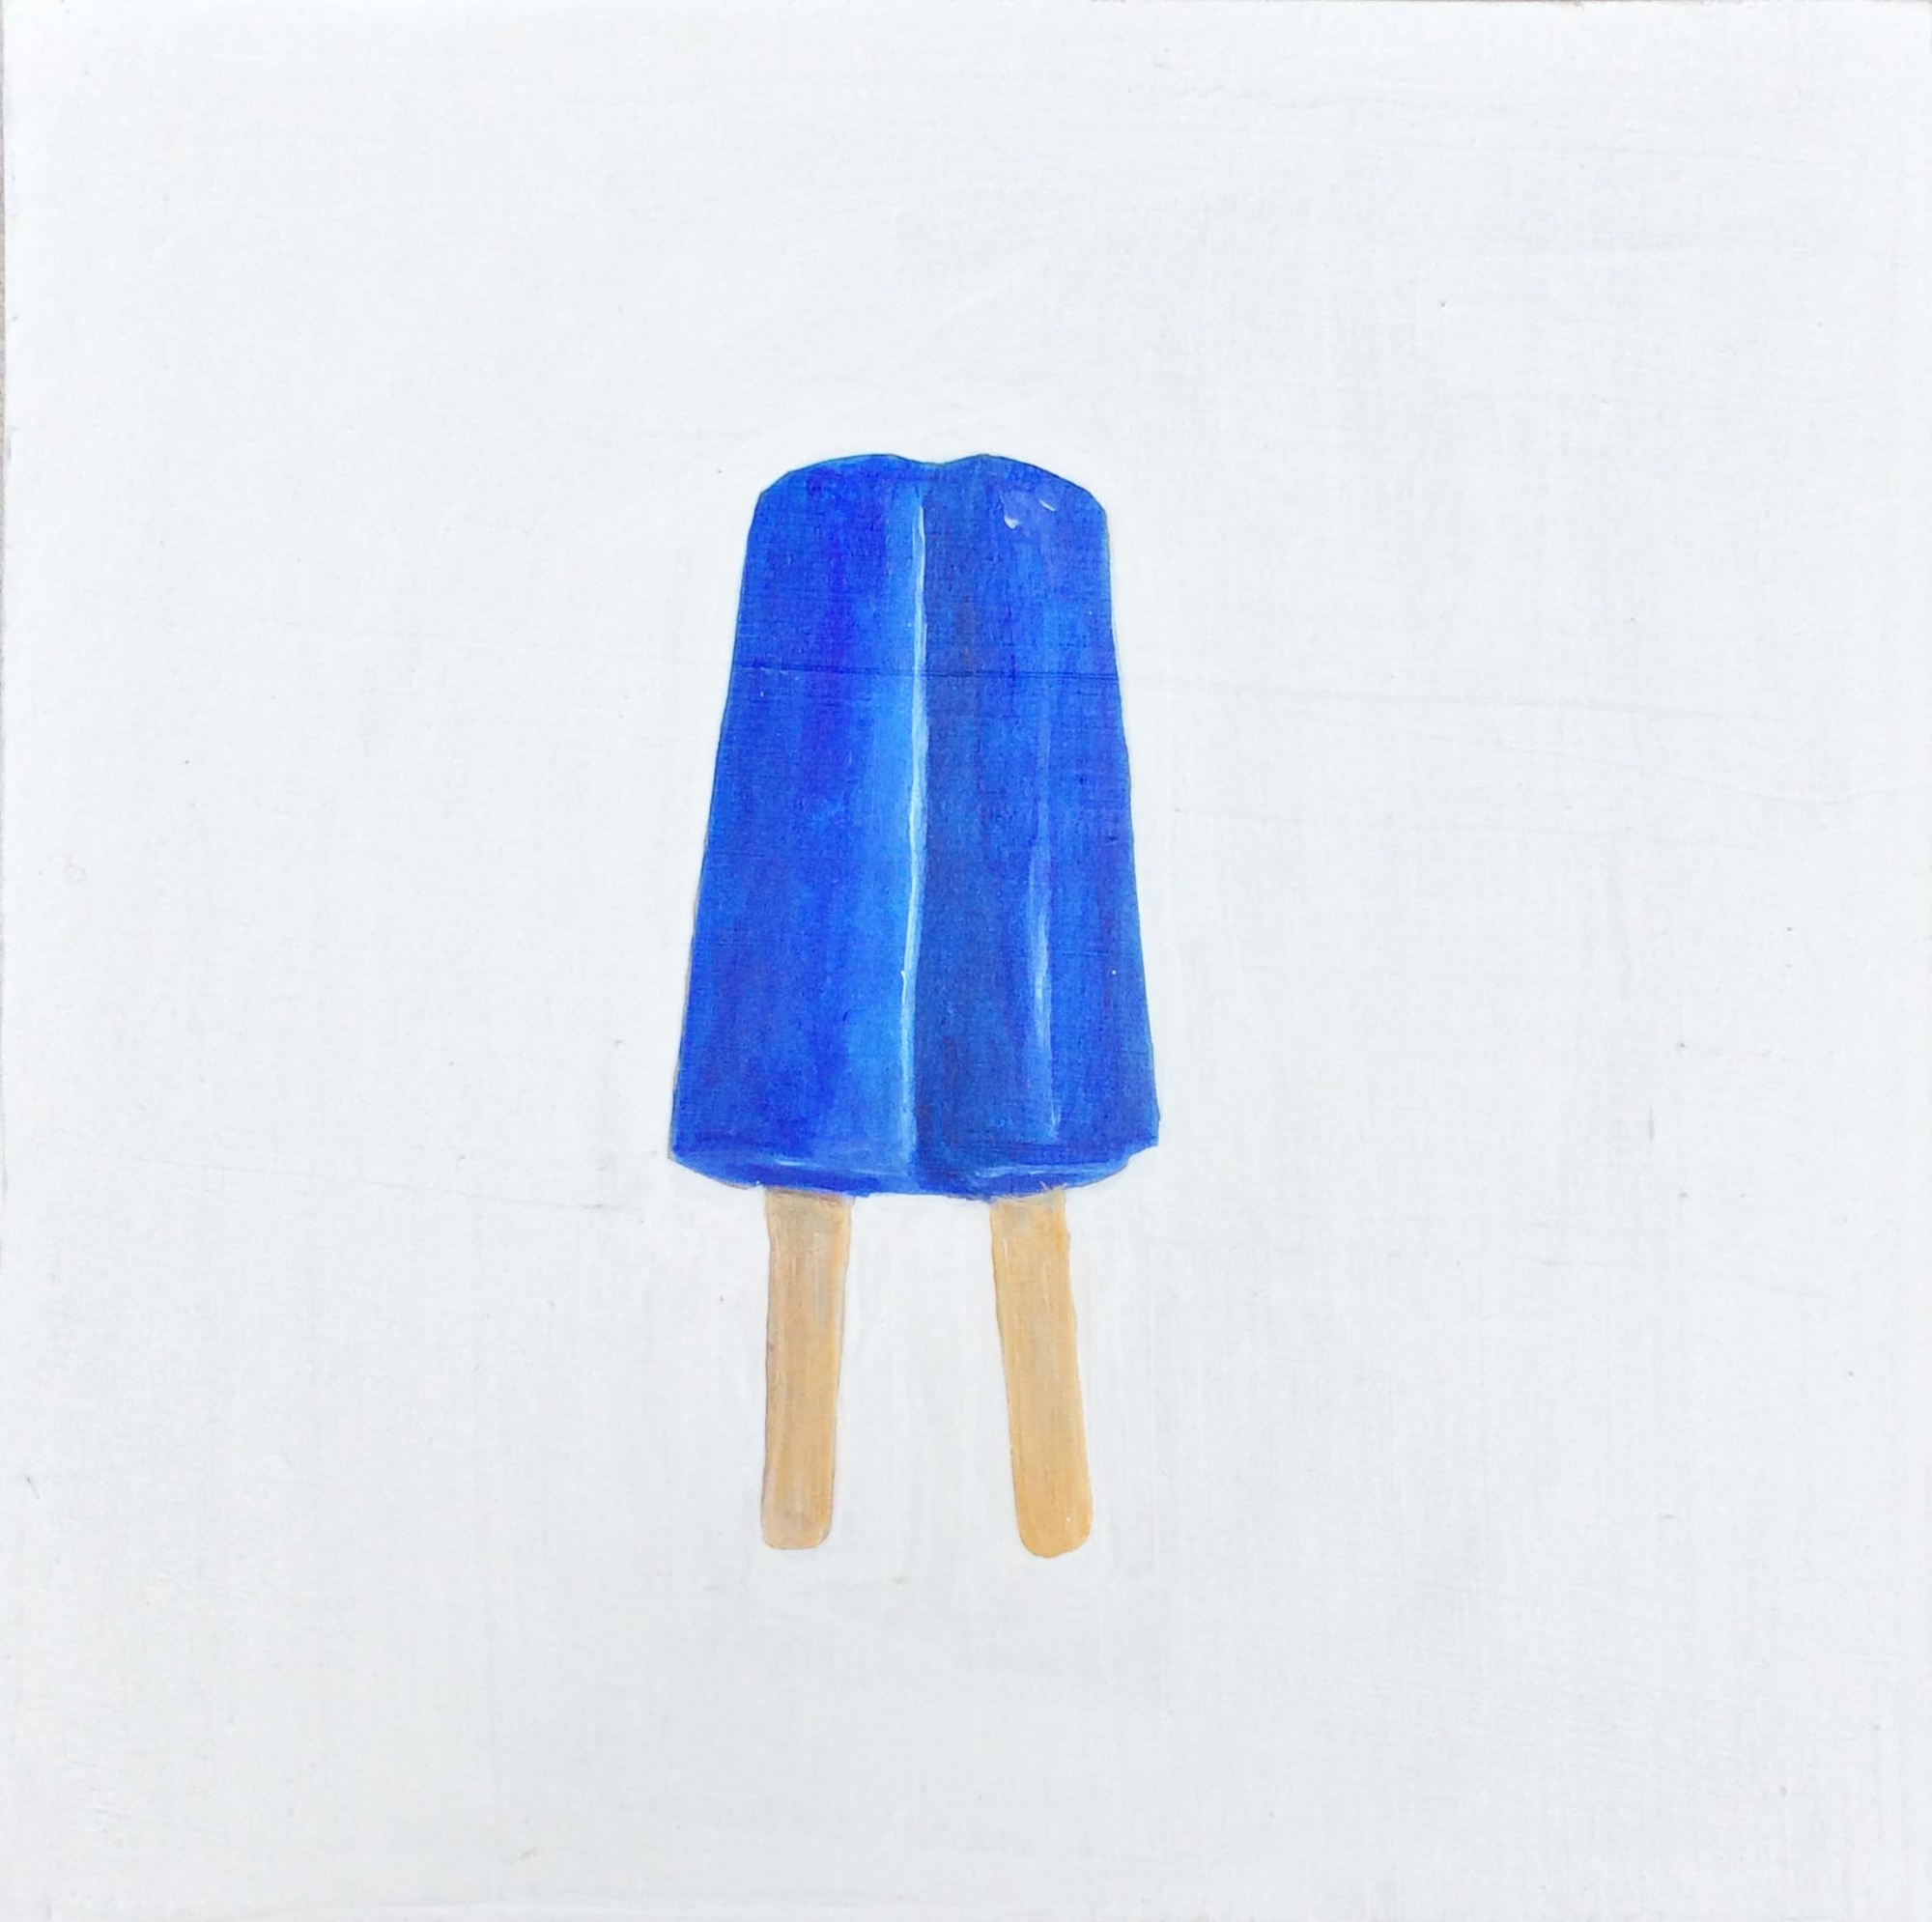 Blue Ice Pop by EM Vincent